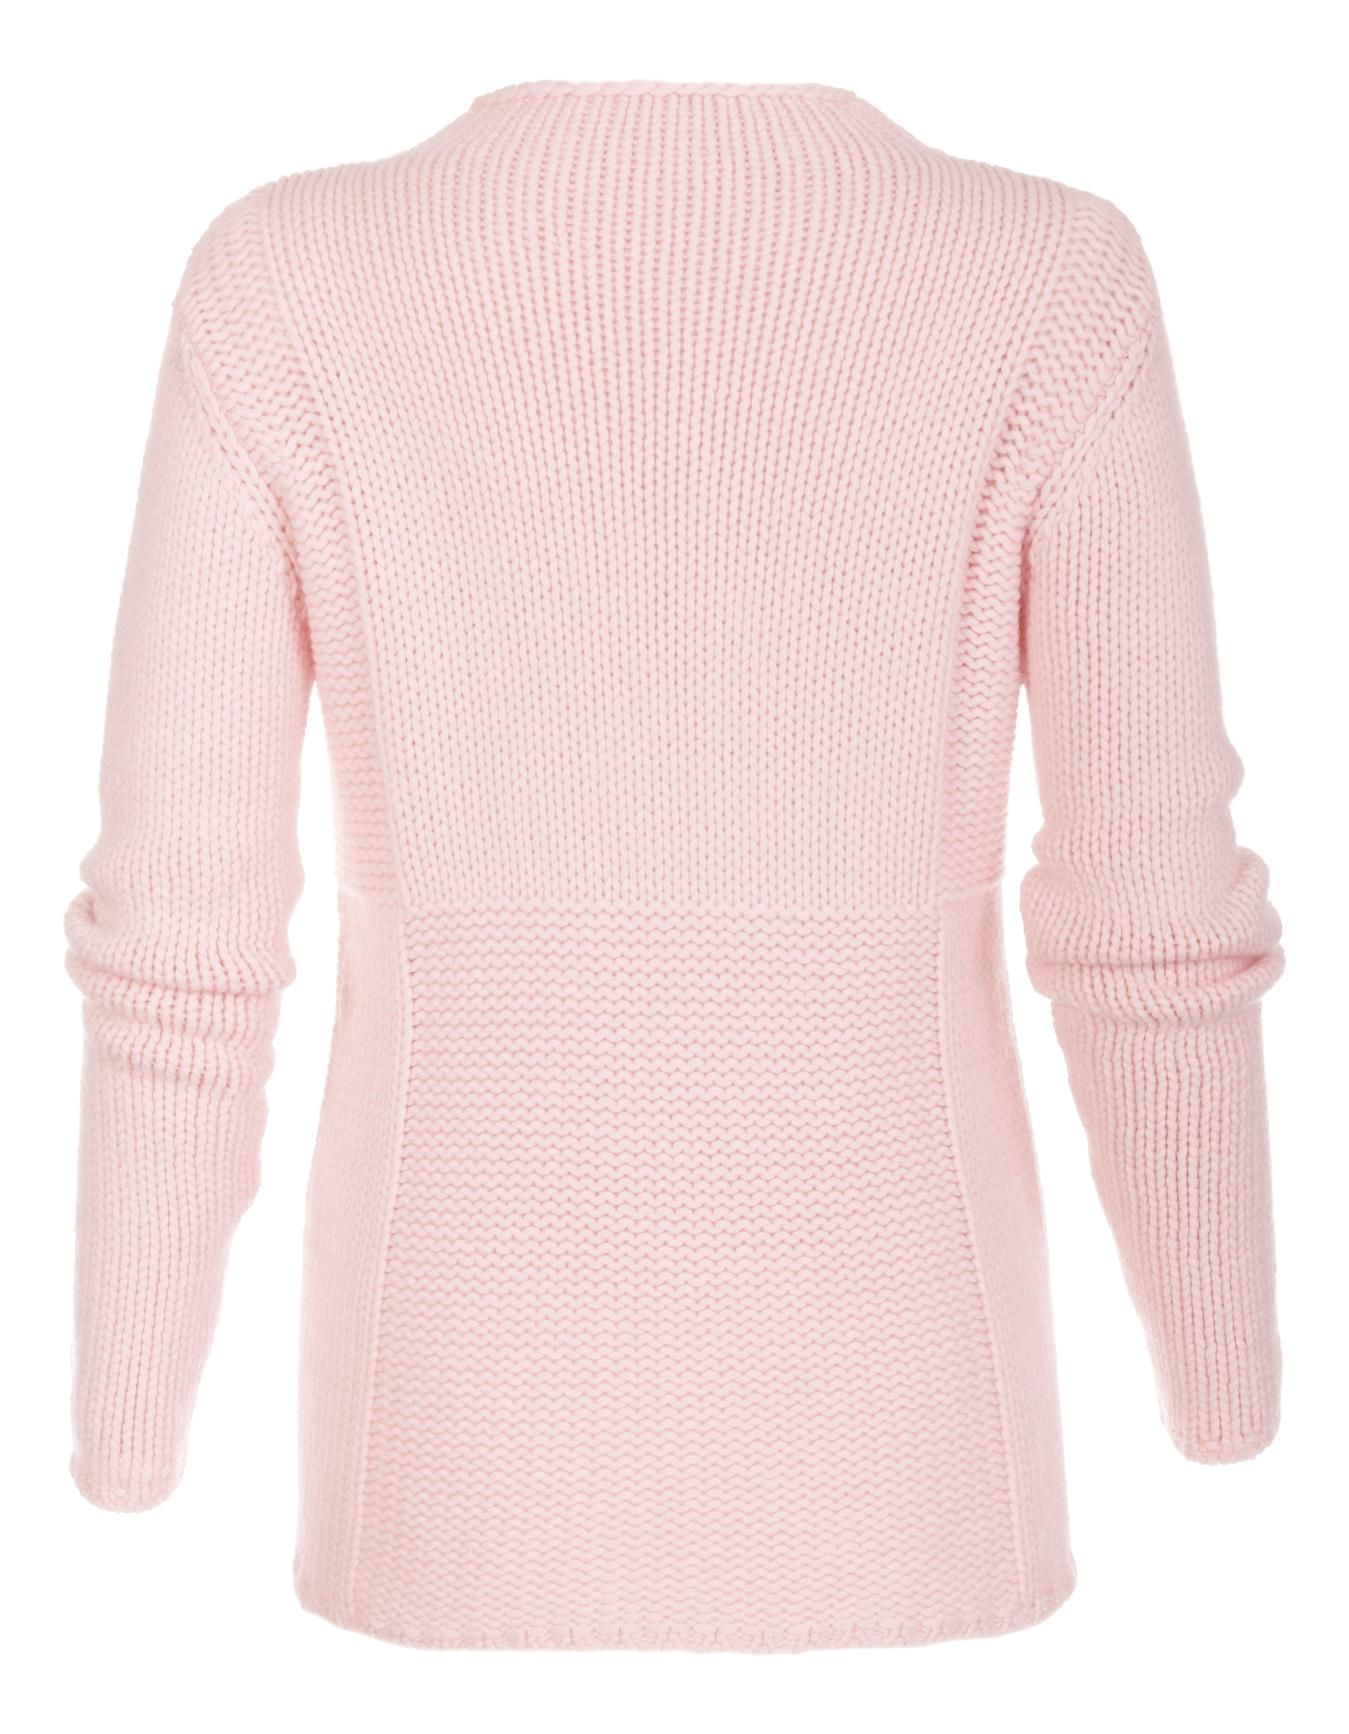 Jumper, pure cashmere in the colors powder rose, light taupe, mint green, wool white, grey - pink, taupe, green, white - in the MADELEINE online collection